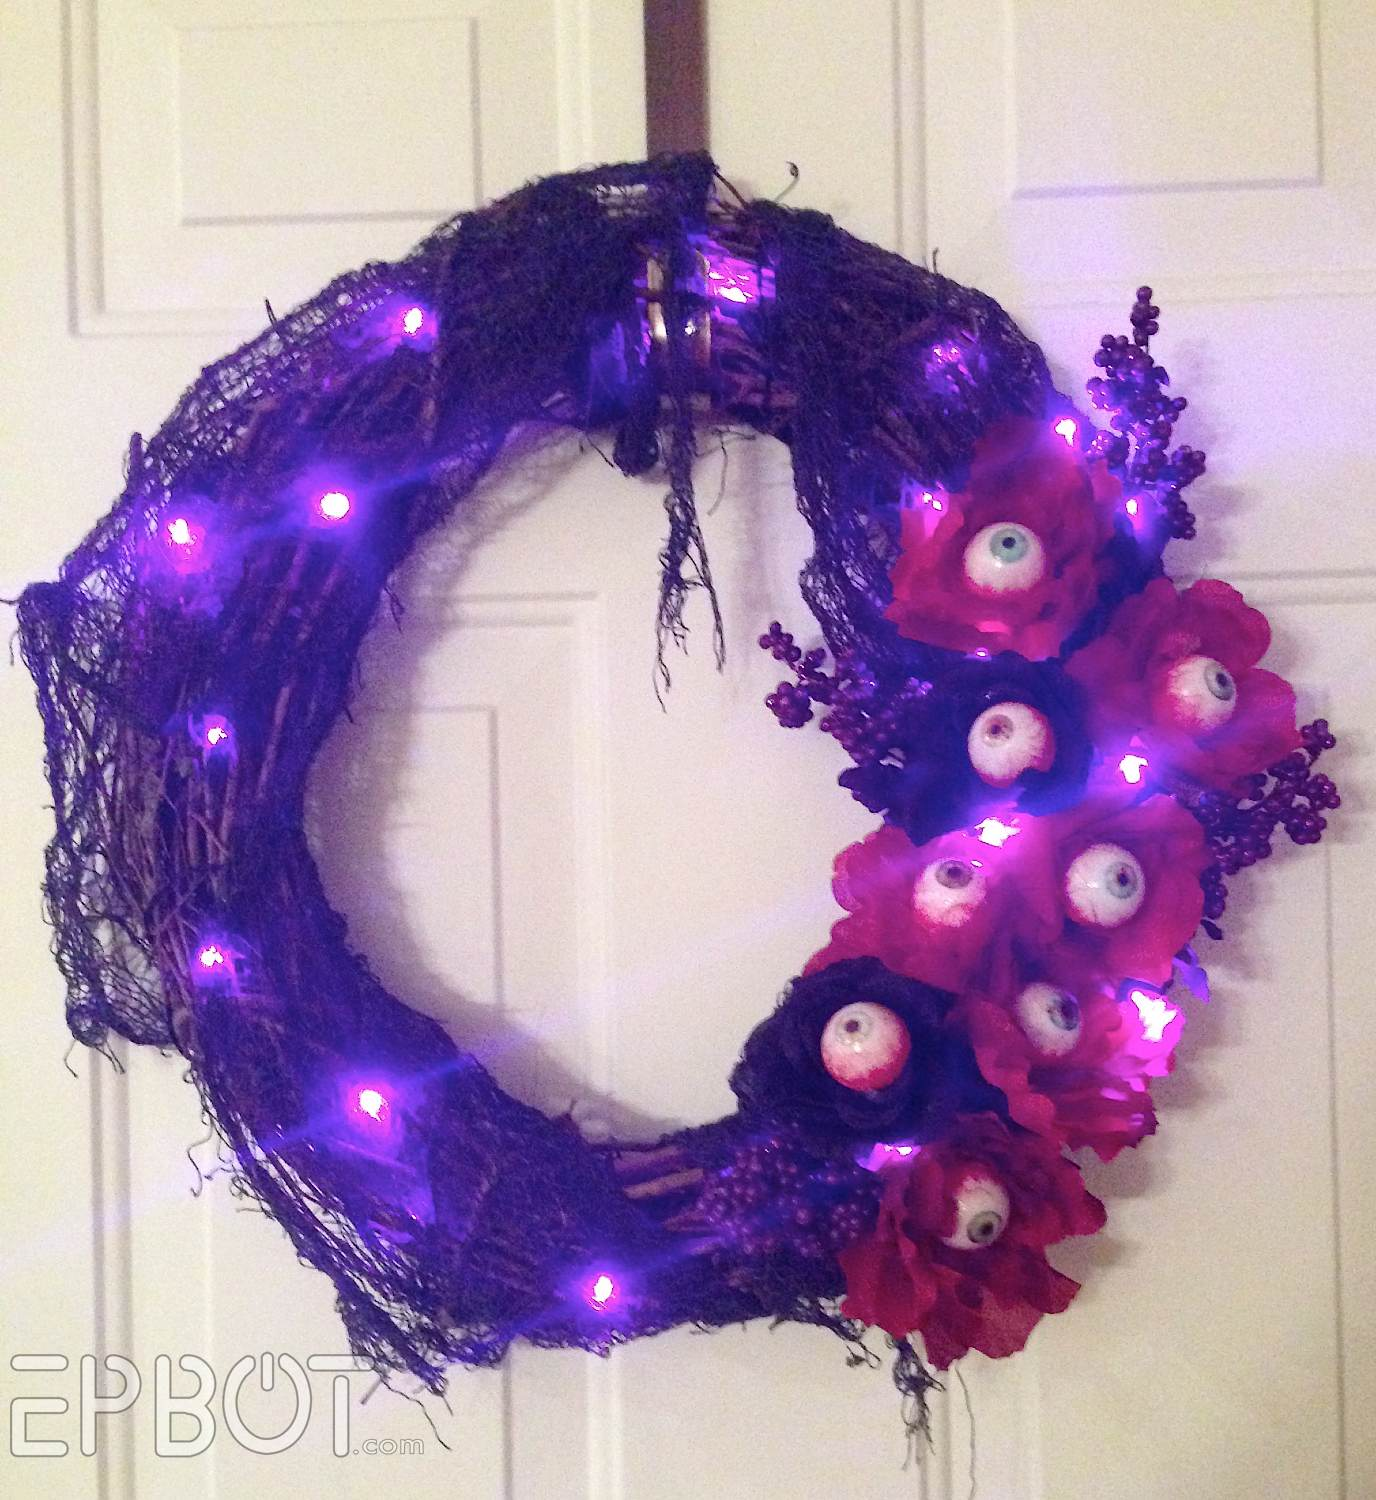 Eyeball christmas ornaments - It Helps To Have The Lights On For This Stage So You Can Avoid Covering The Bulbs With Your Flowers Do Hide The Battery Pack Though